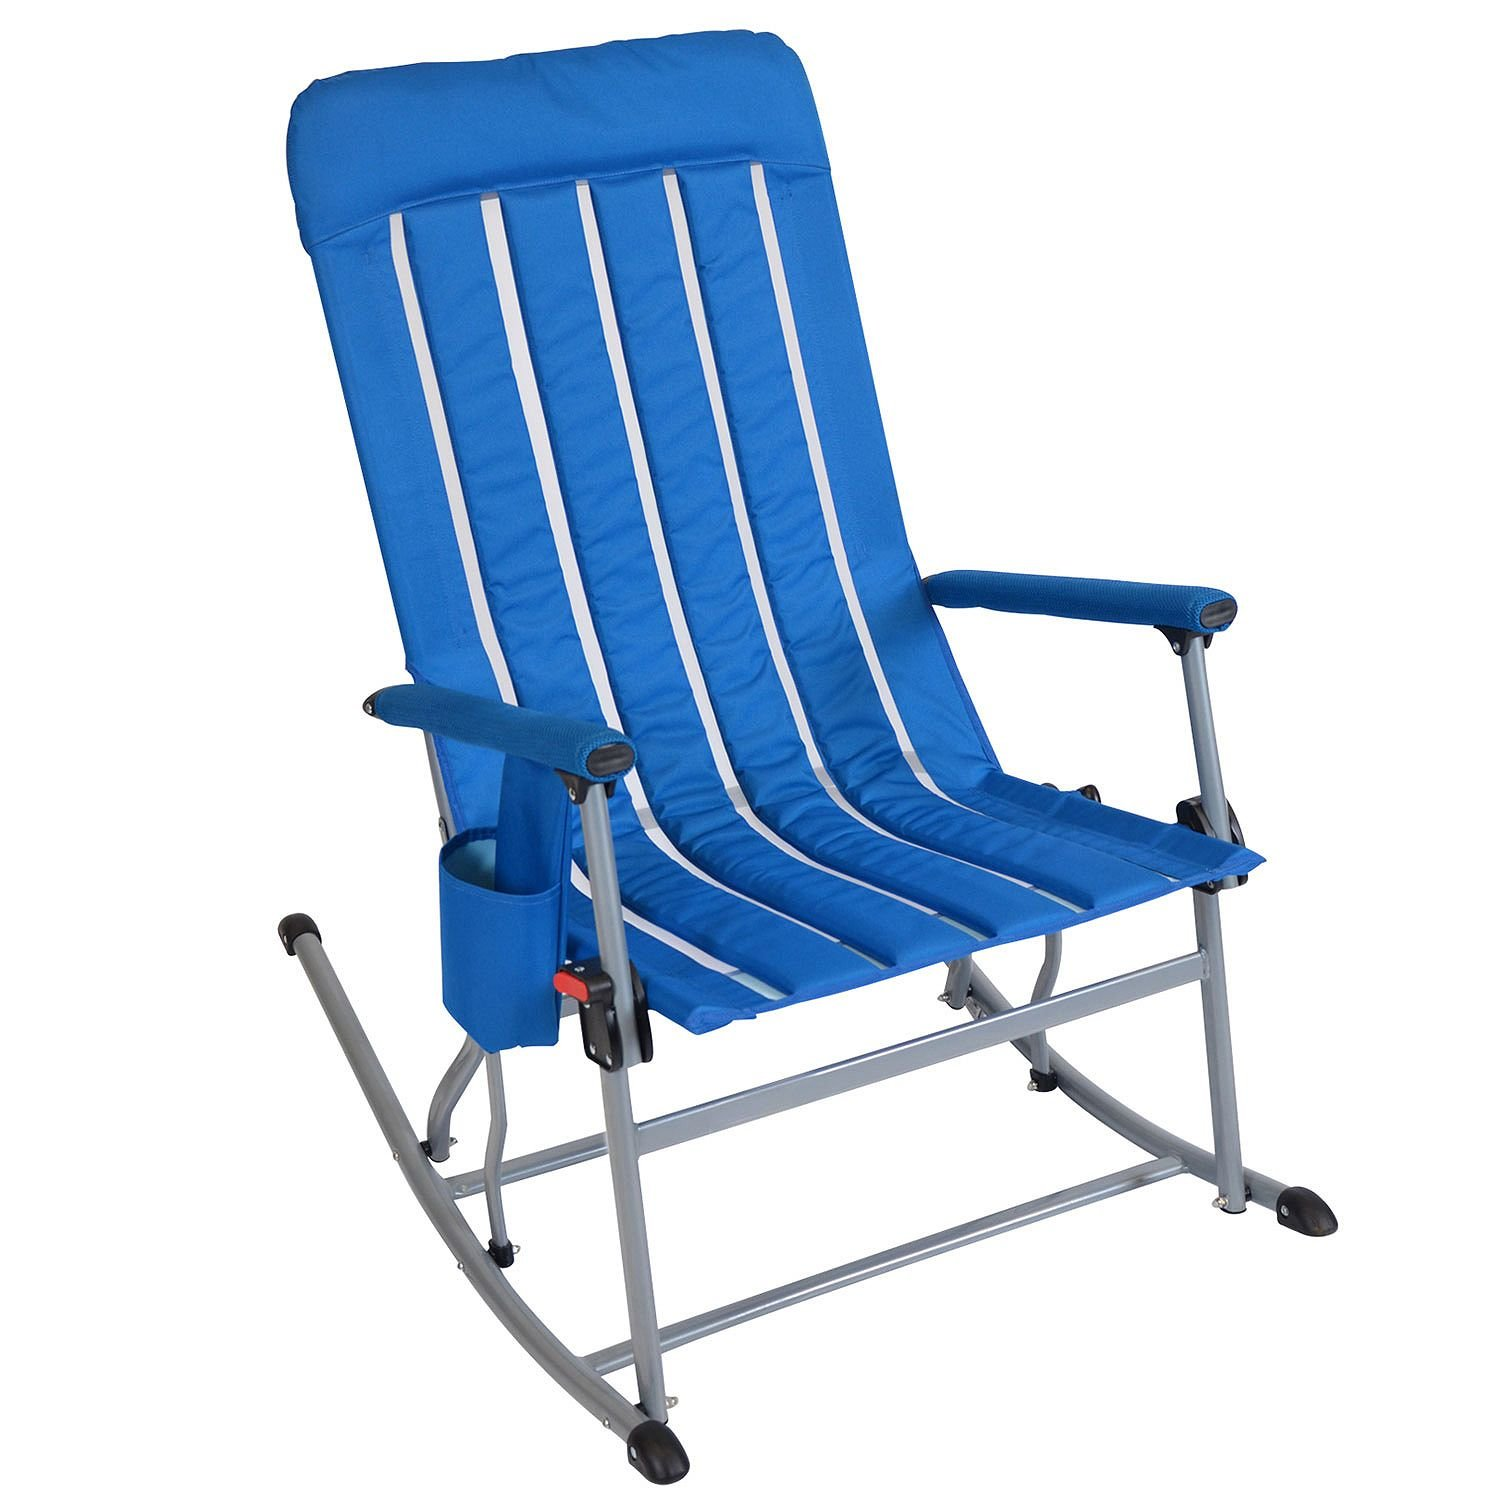 Member's Mark Portable Rocking Chair - Blue by Member's Mark